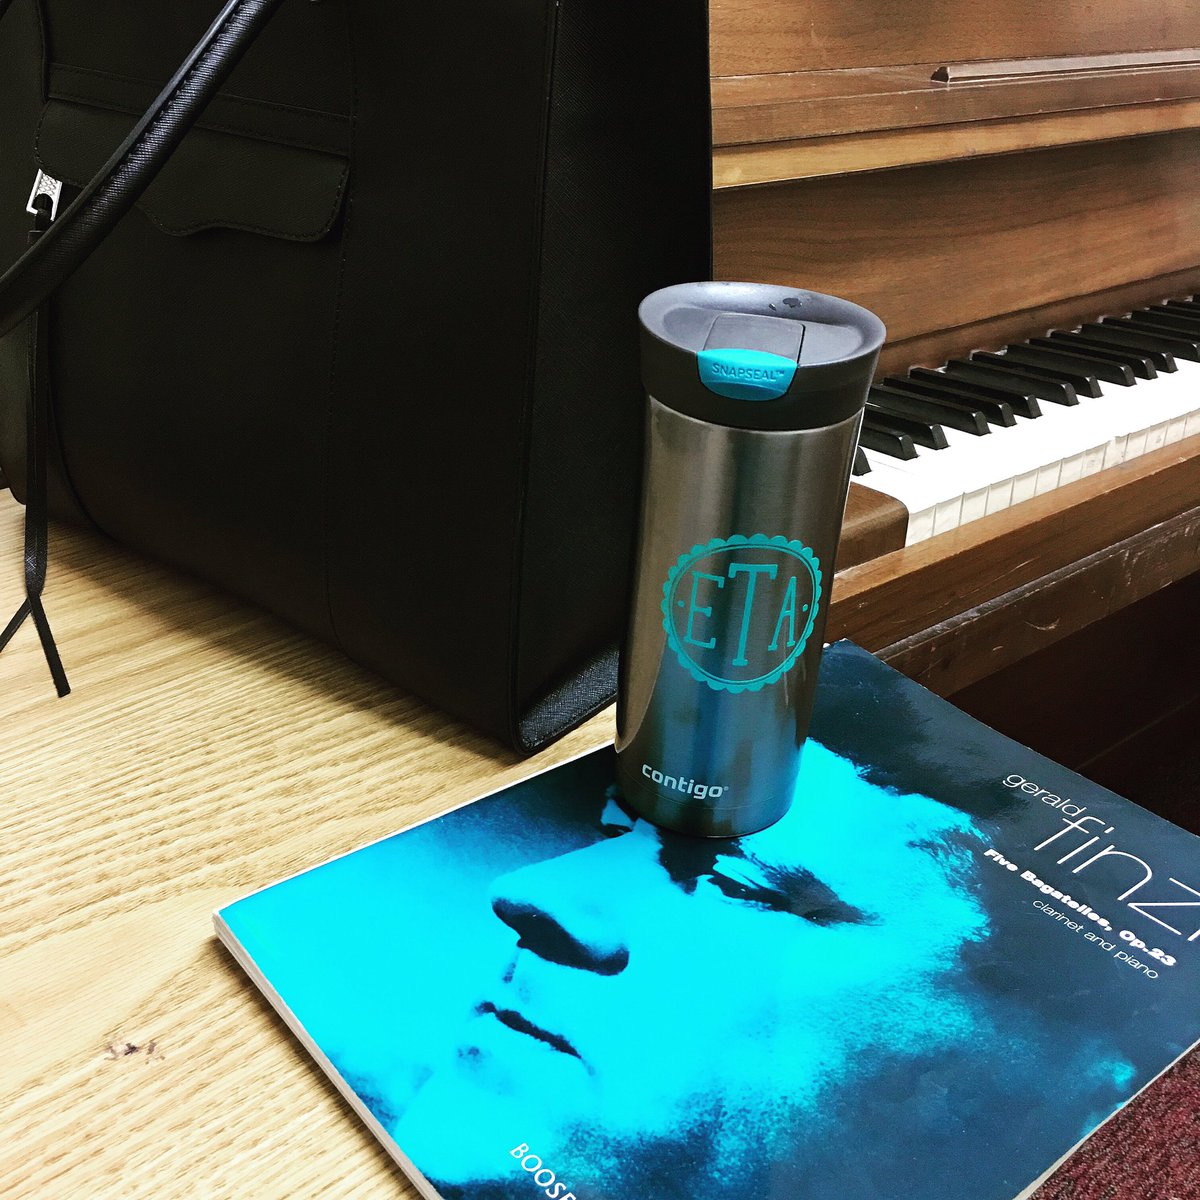 When you accidentally match your coffee to your Finzi. #clarinetlife #clarinet #clarinetist #finzi #coffee<br>http://pic.twitter.com/1aE61wjPKj